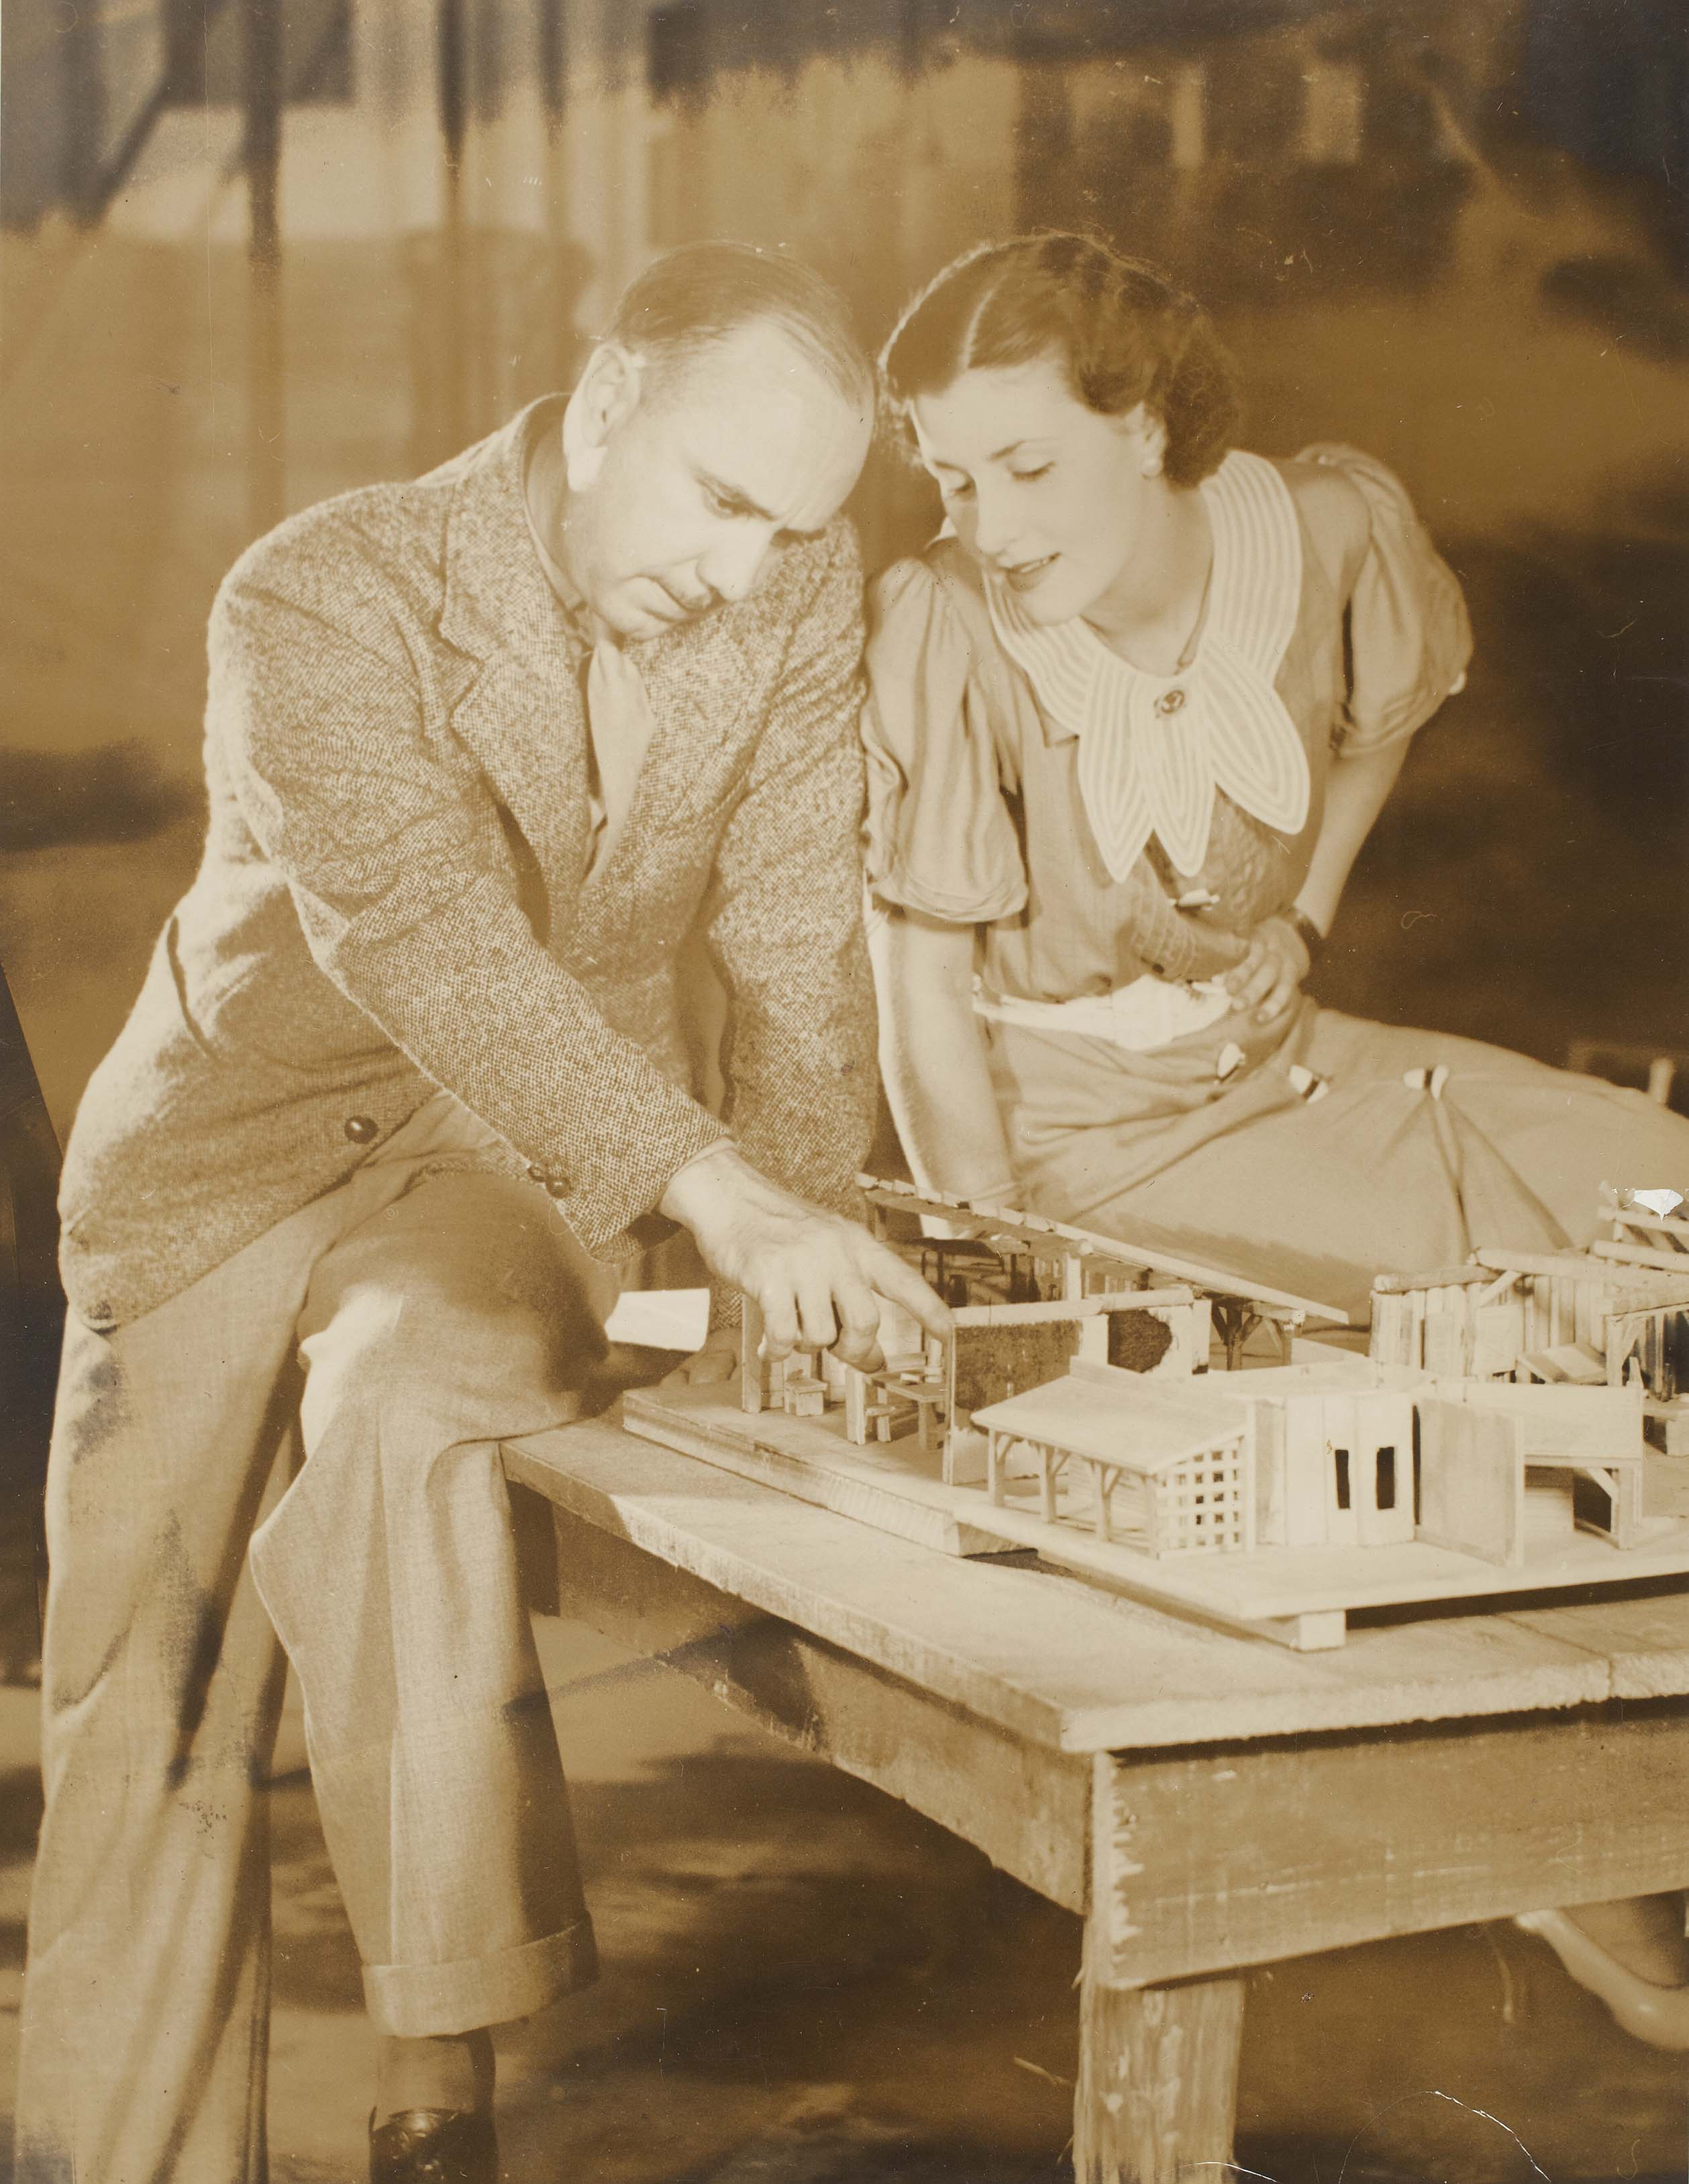 Man and woman looking at miniature house on a table